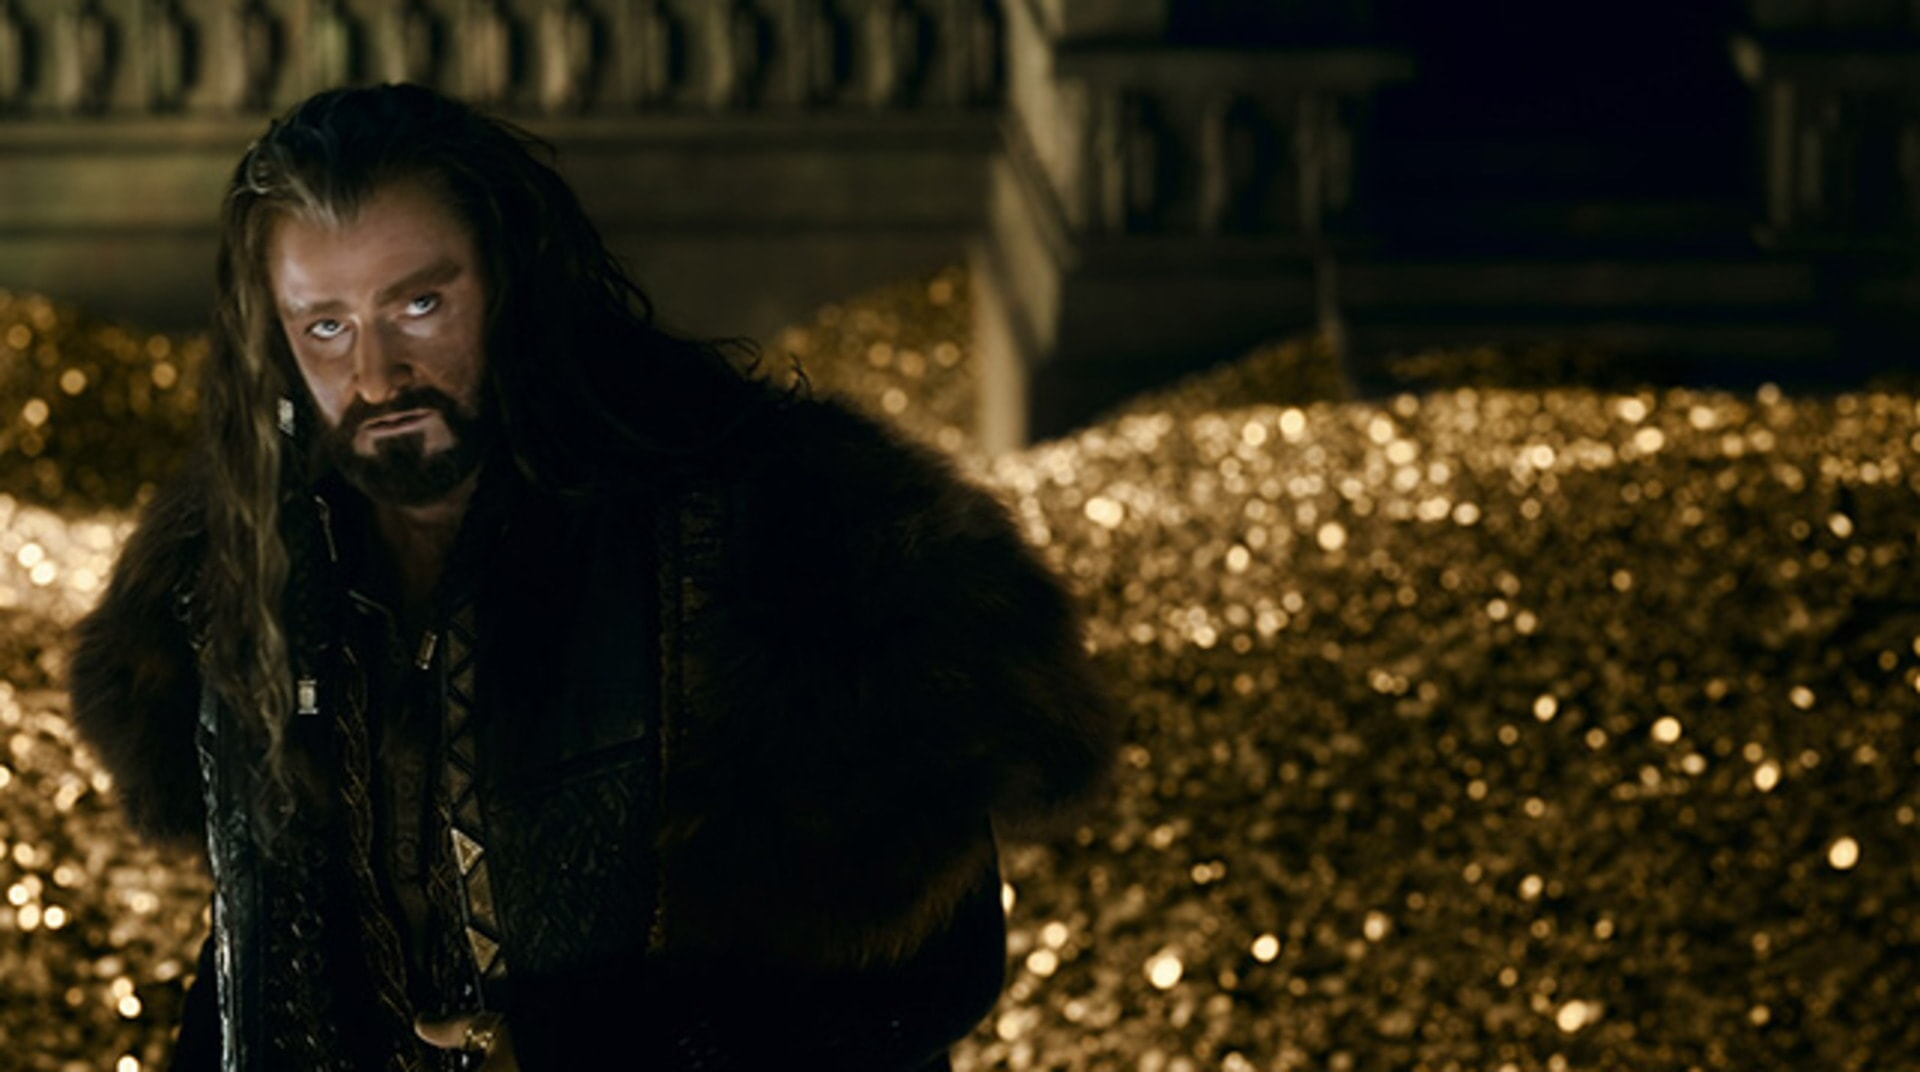 The Hobbit: The Battle of the Five Armies - Image 34